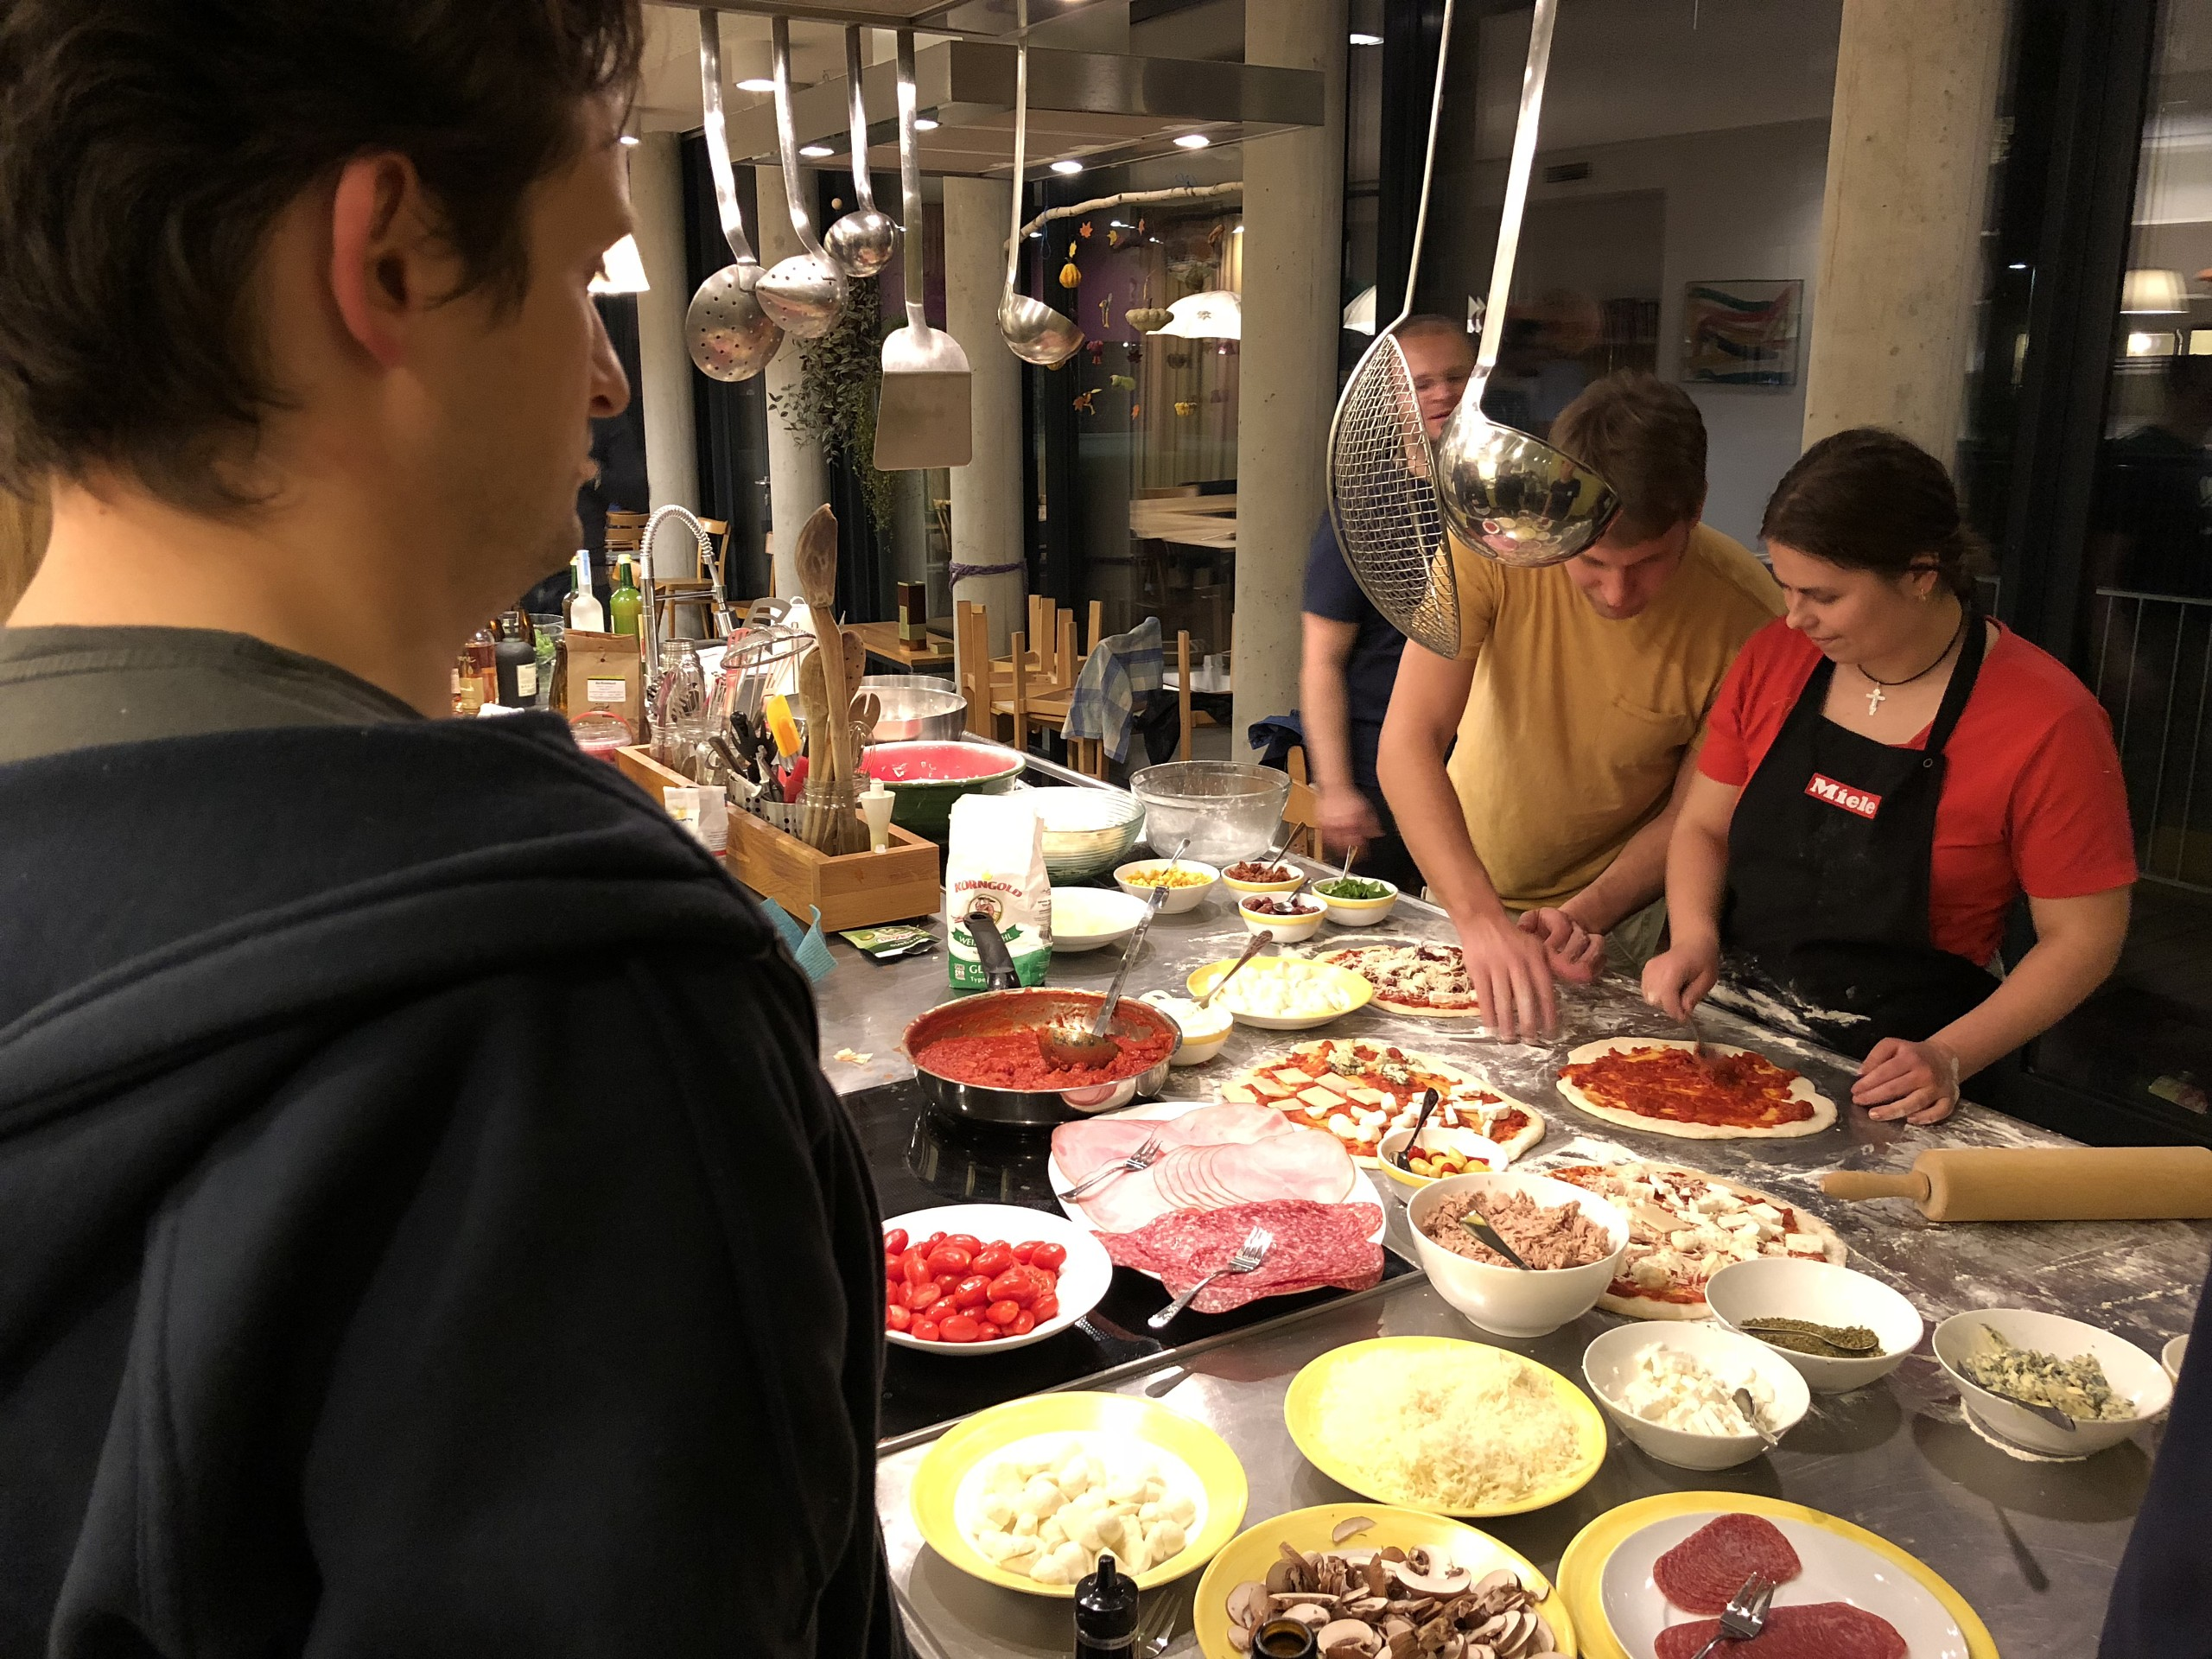 Pizza evening at the Neos sprint Vienna 2017